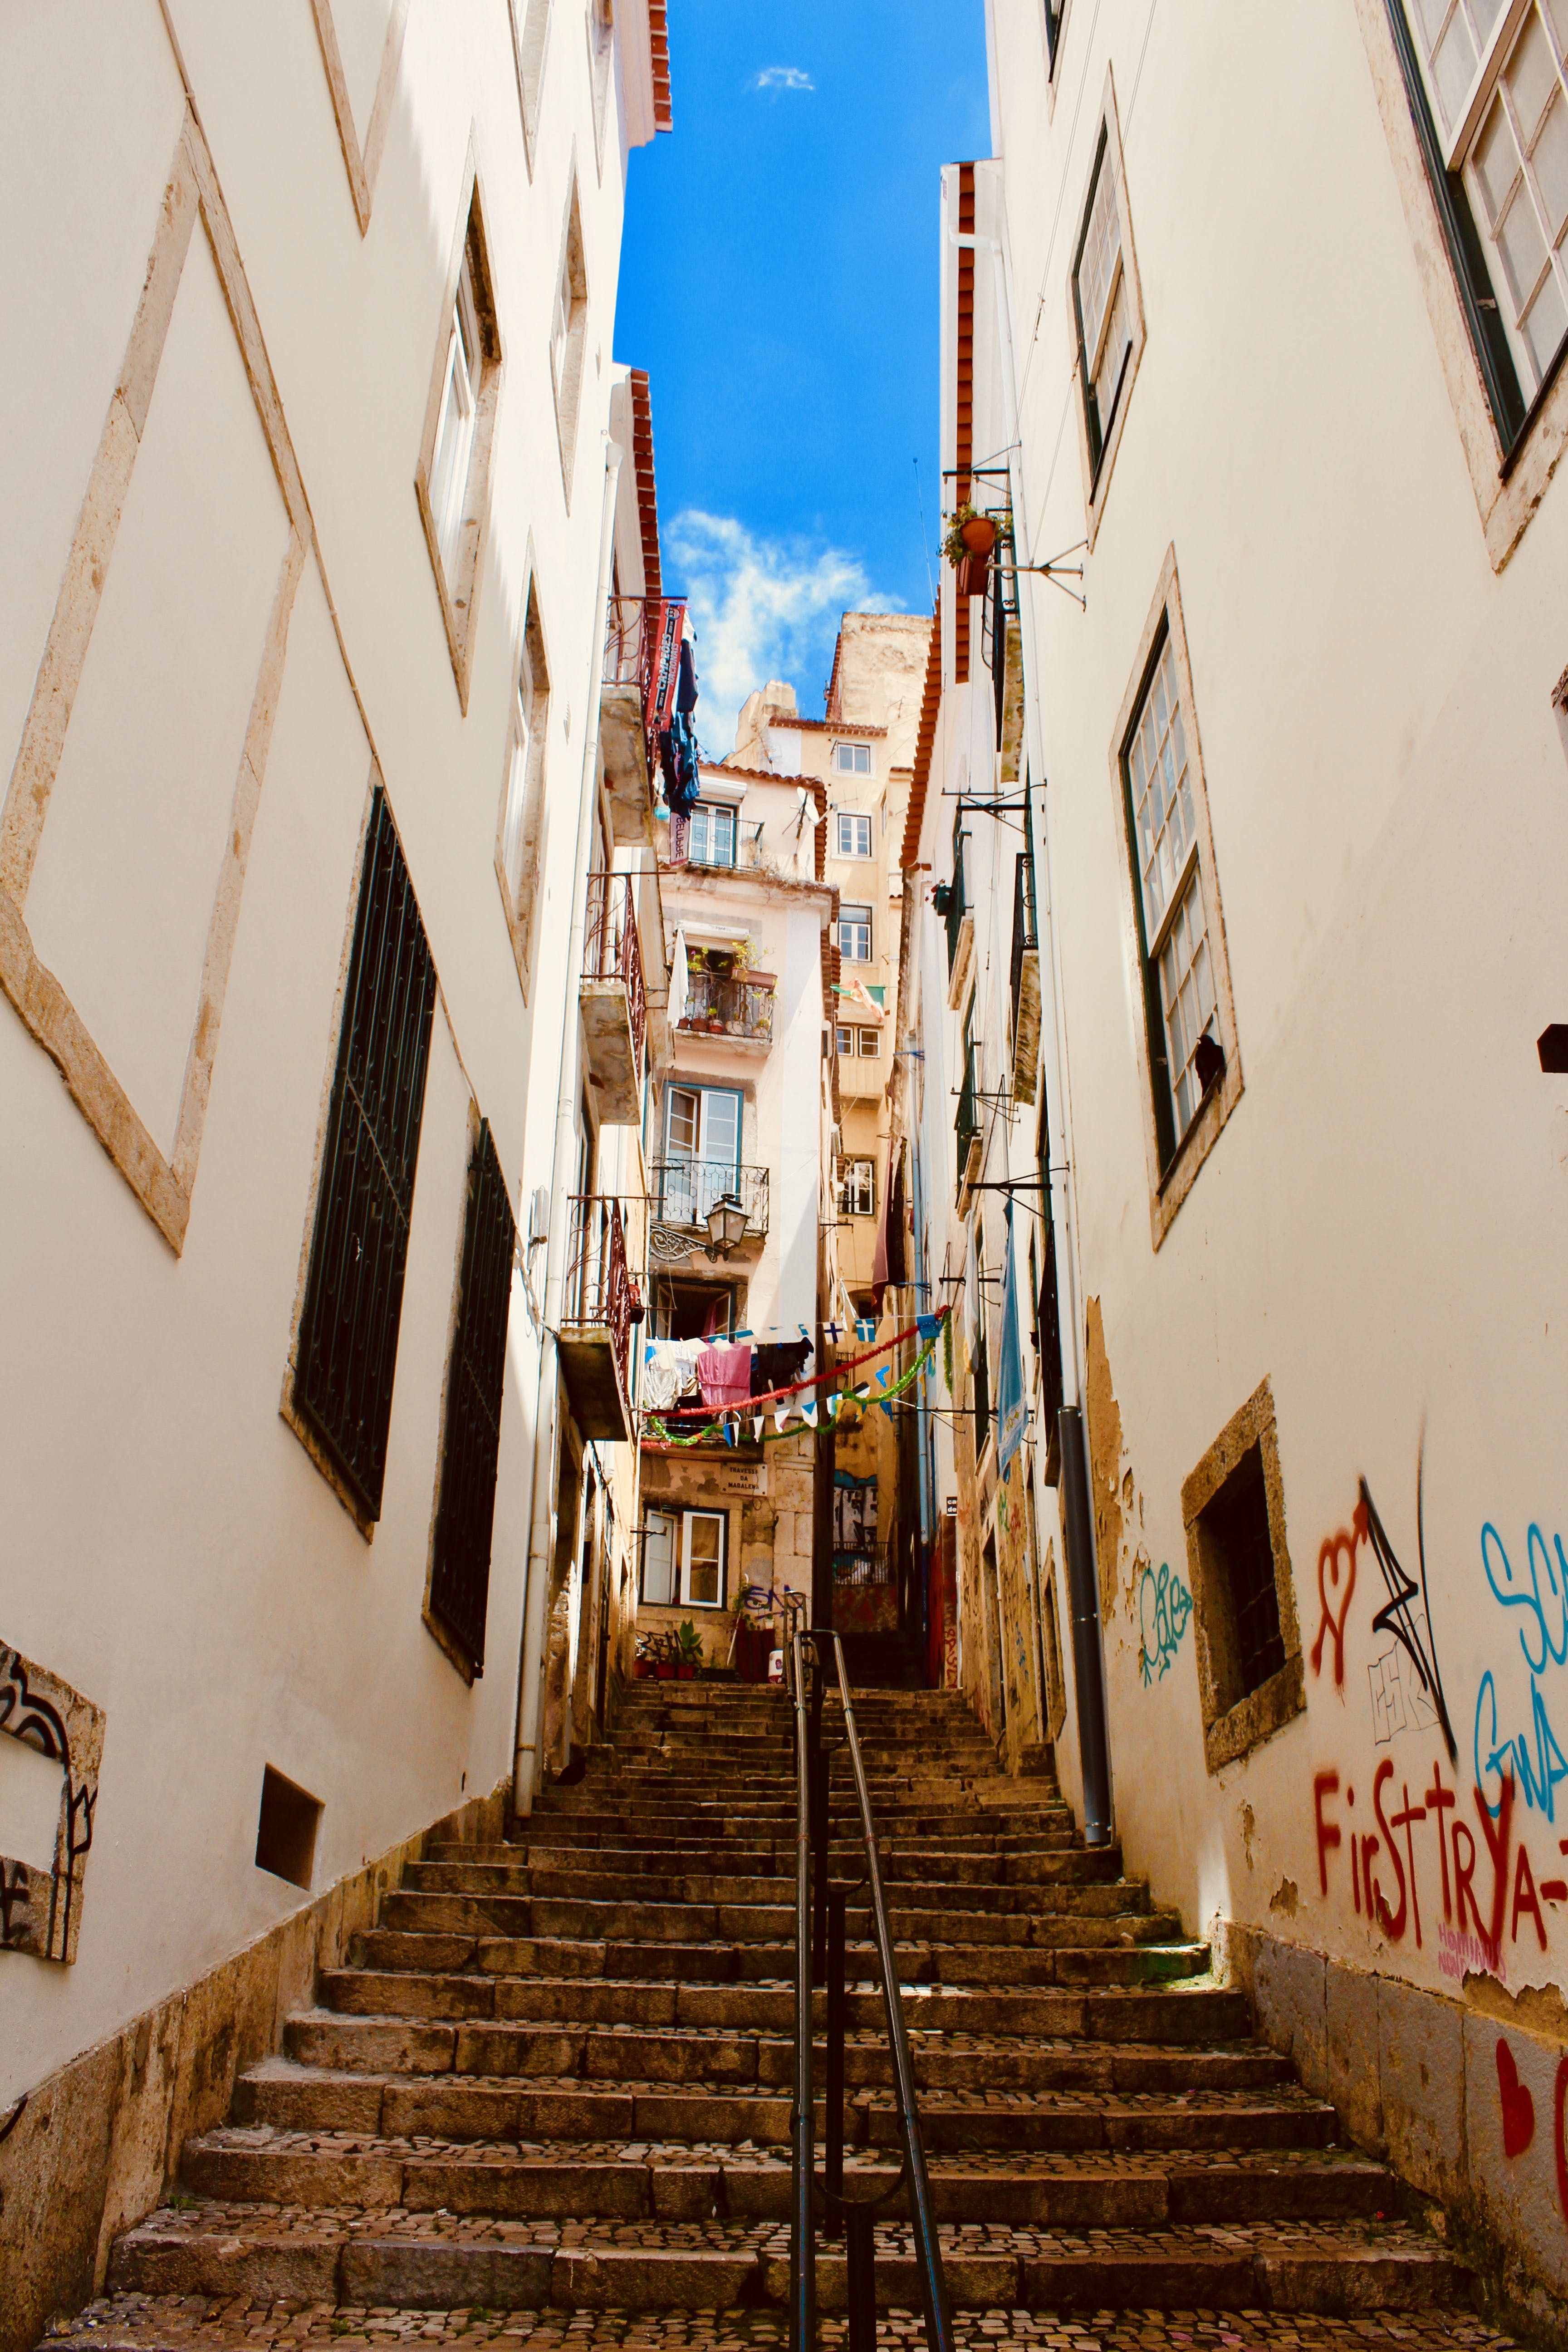 Two White Buildings and Stairs